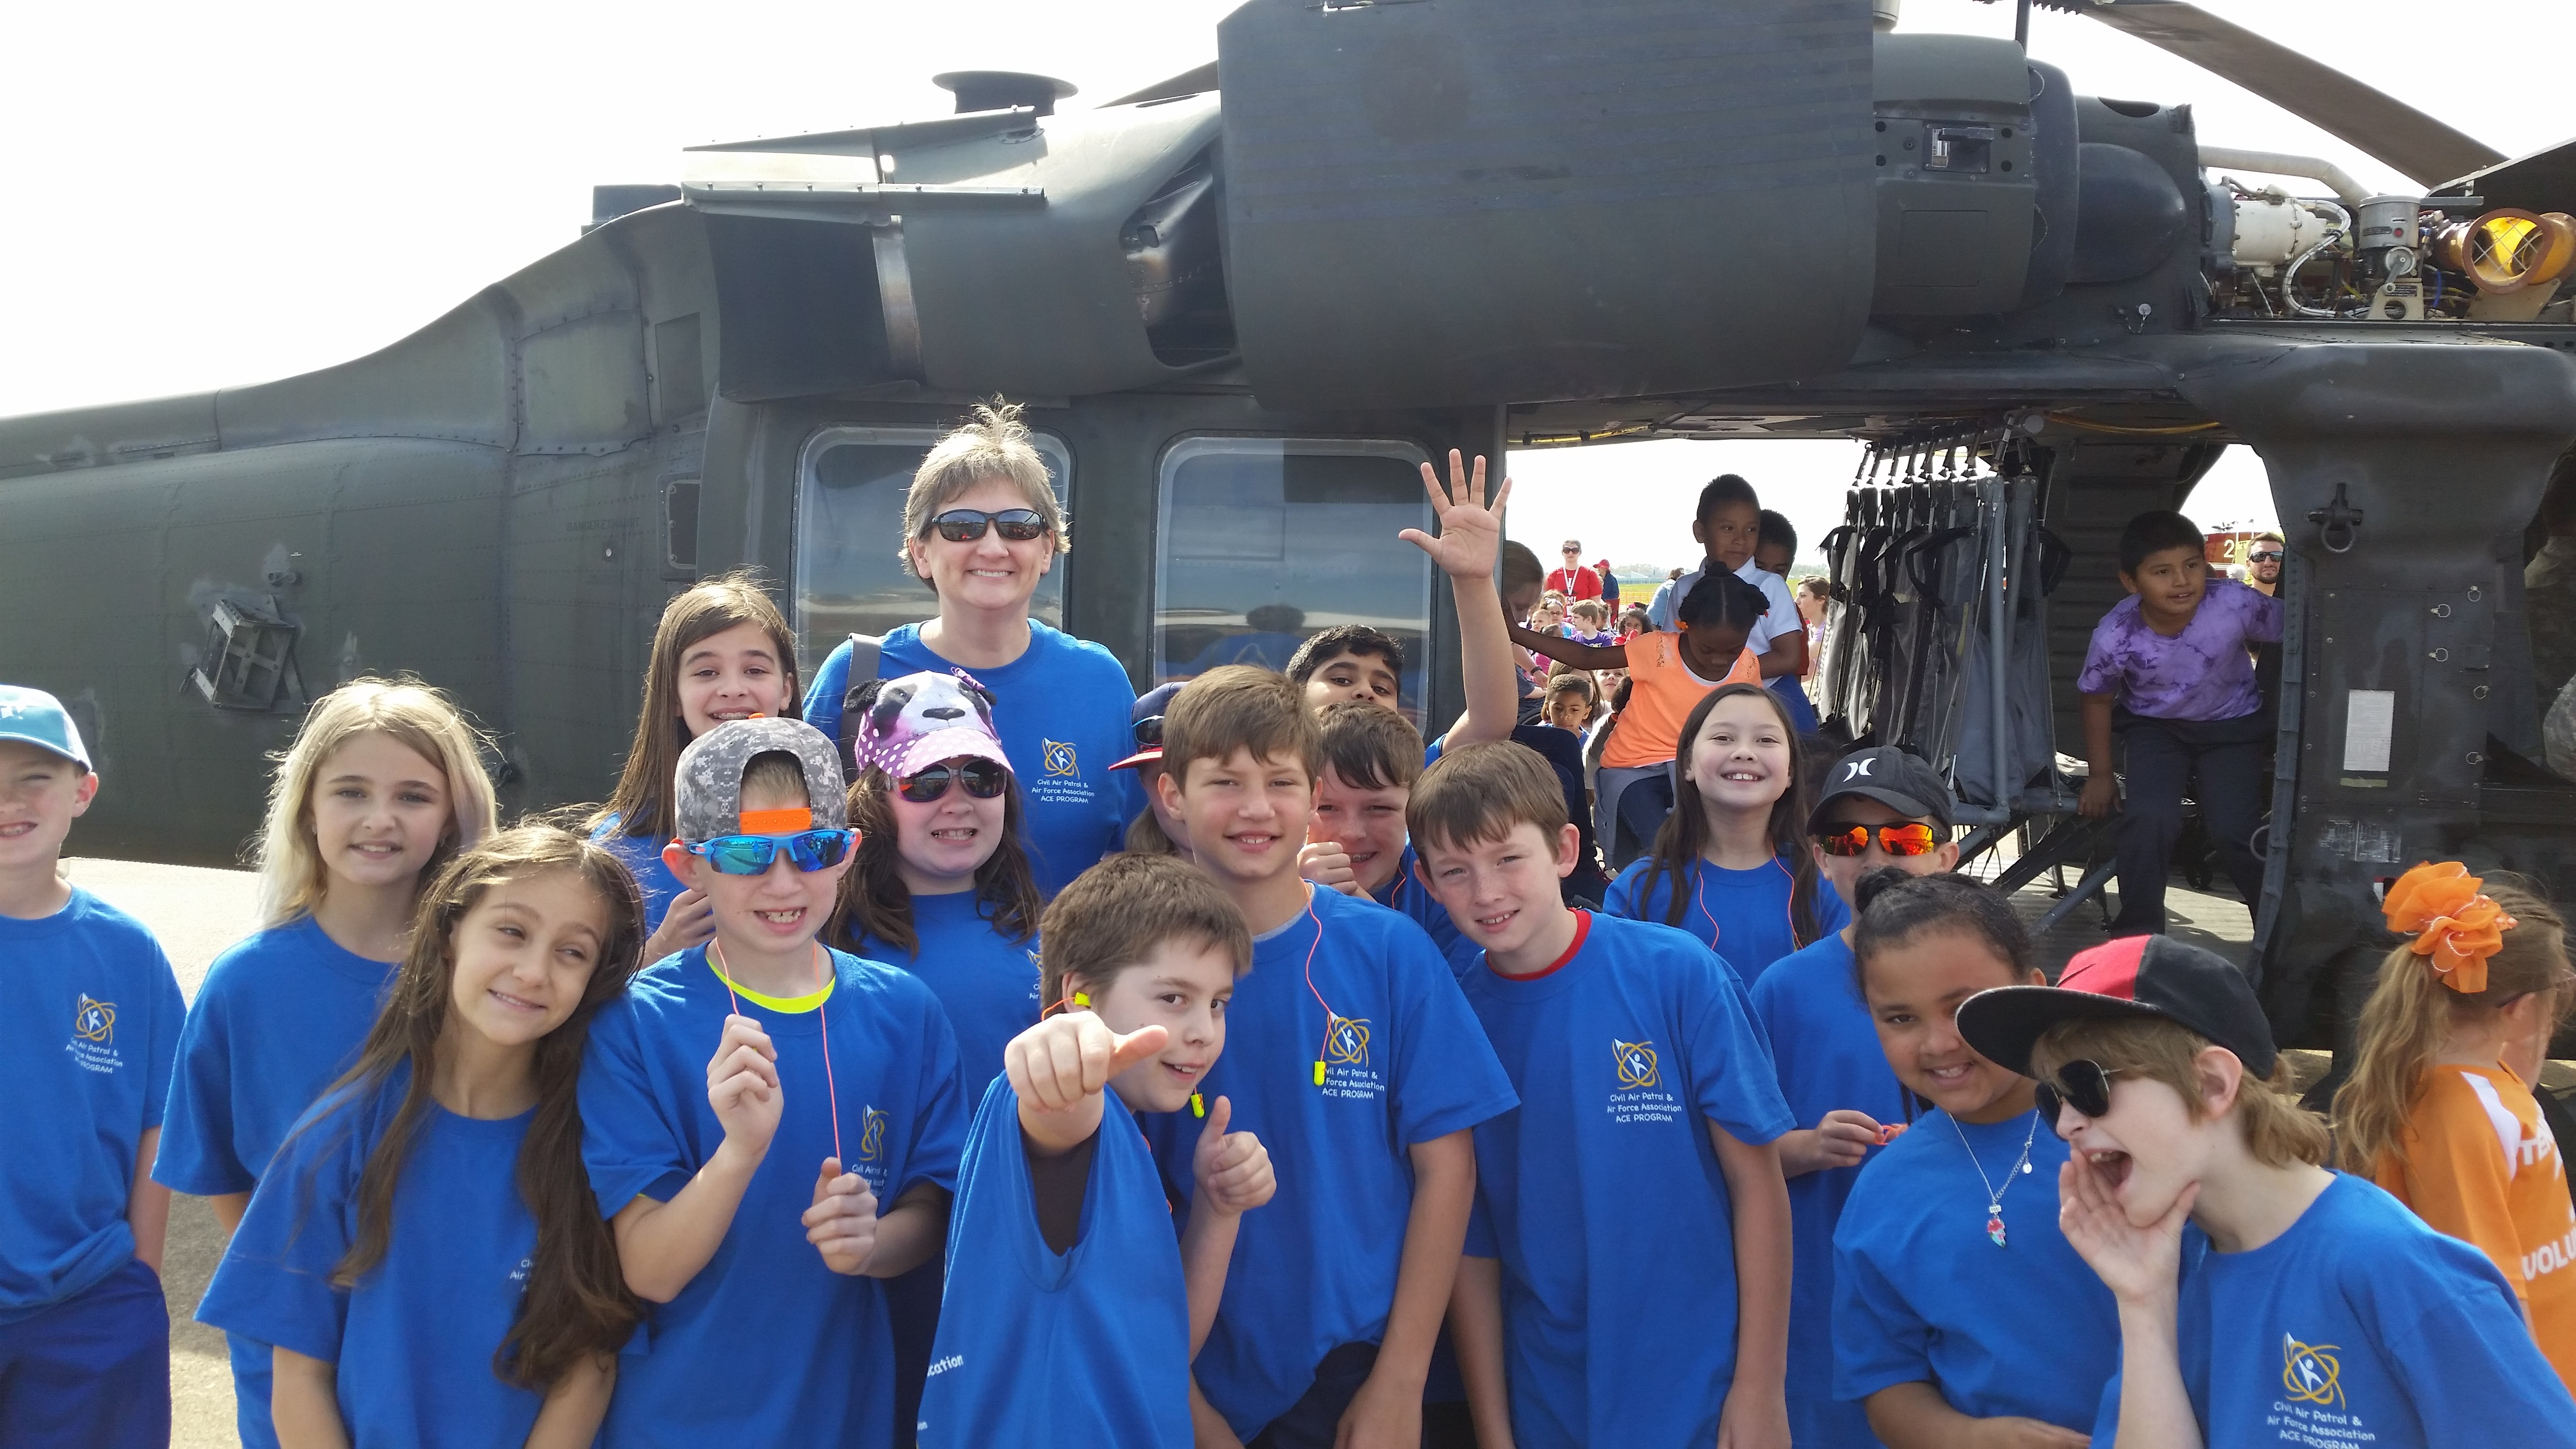 STEM coordinator Suzanne Costner visits an air show with her students from Fairview Elementary School in Tennessee.